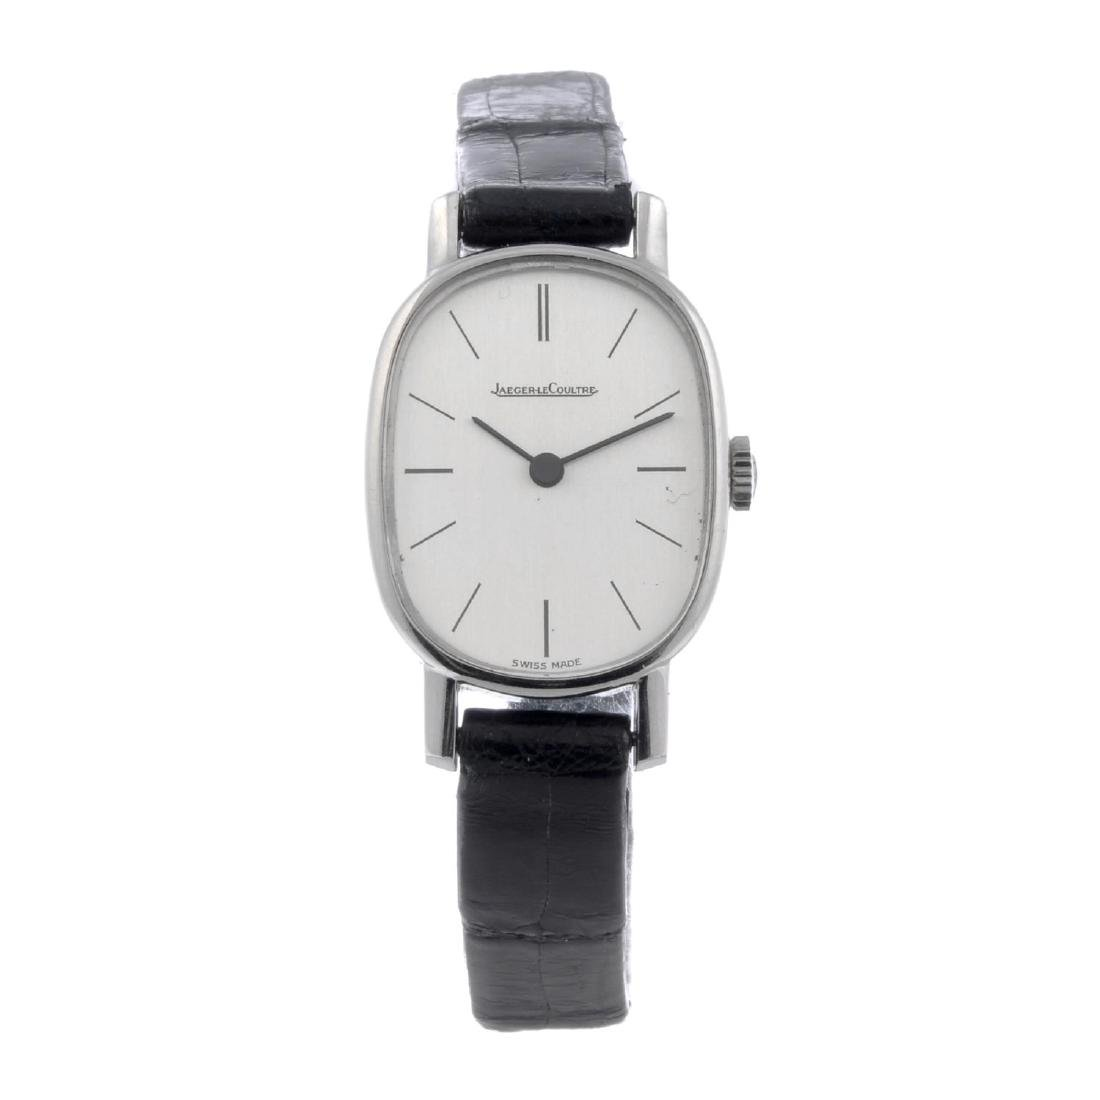 JAEGER-LECOULTRE - a lady's wrist watch. Stainless